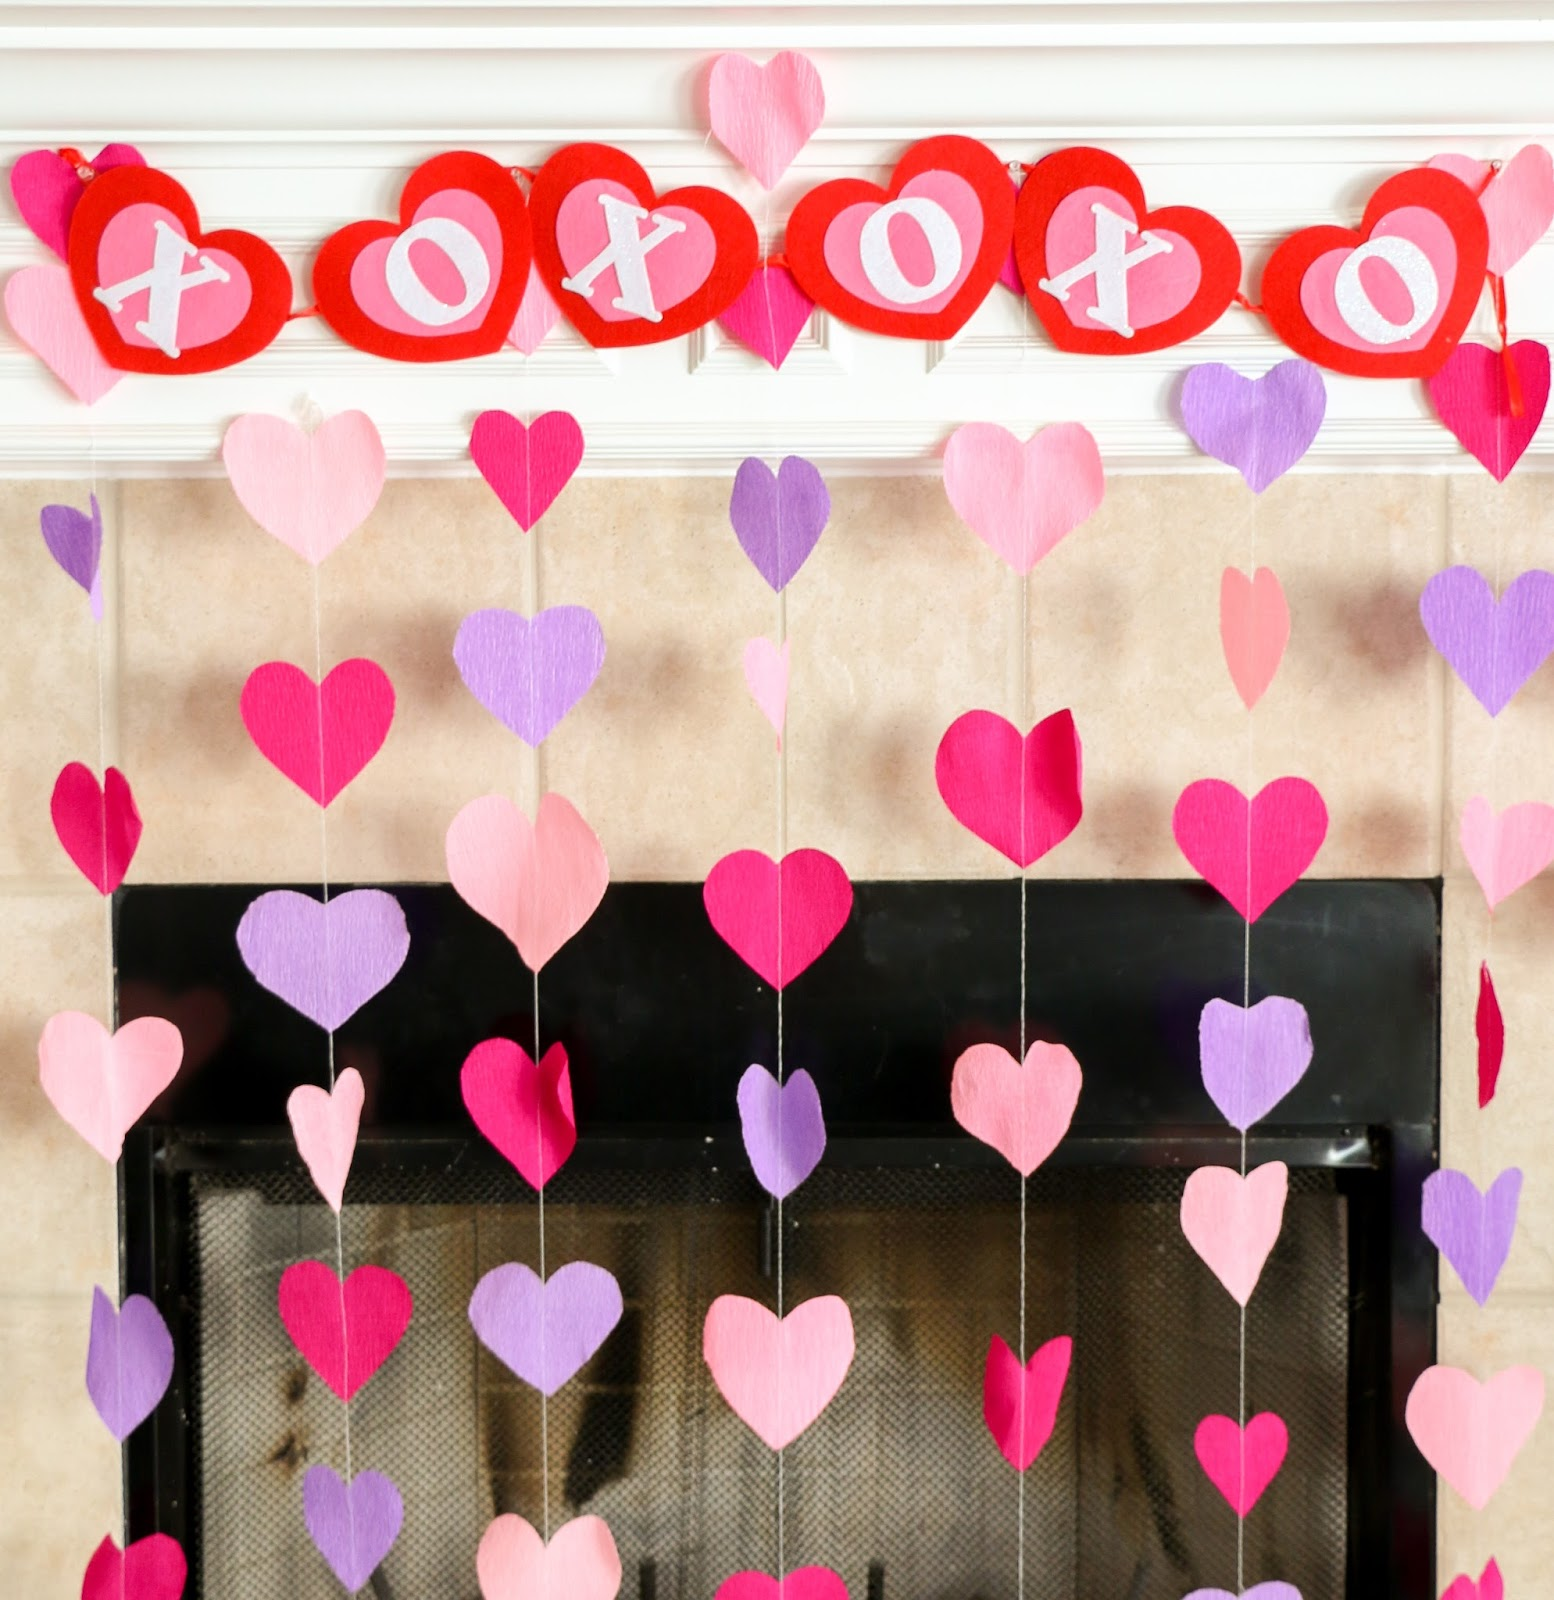 Diy it crepe paper heart decorations a kailo chic life for Heart decorations for the home